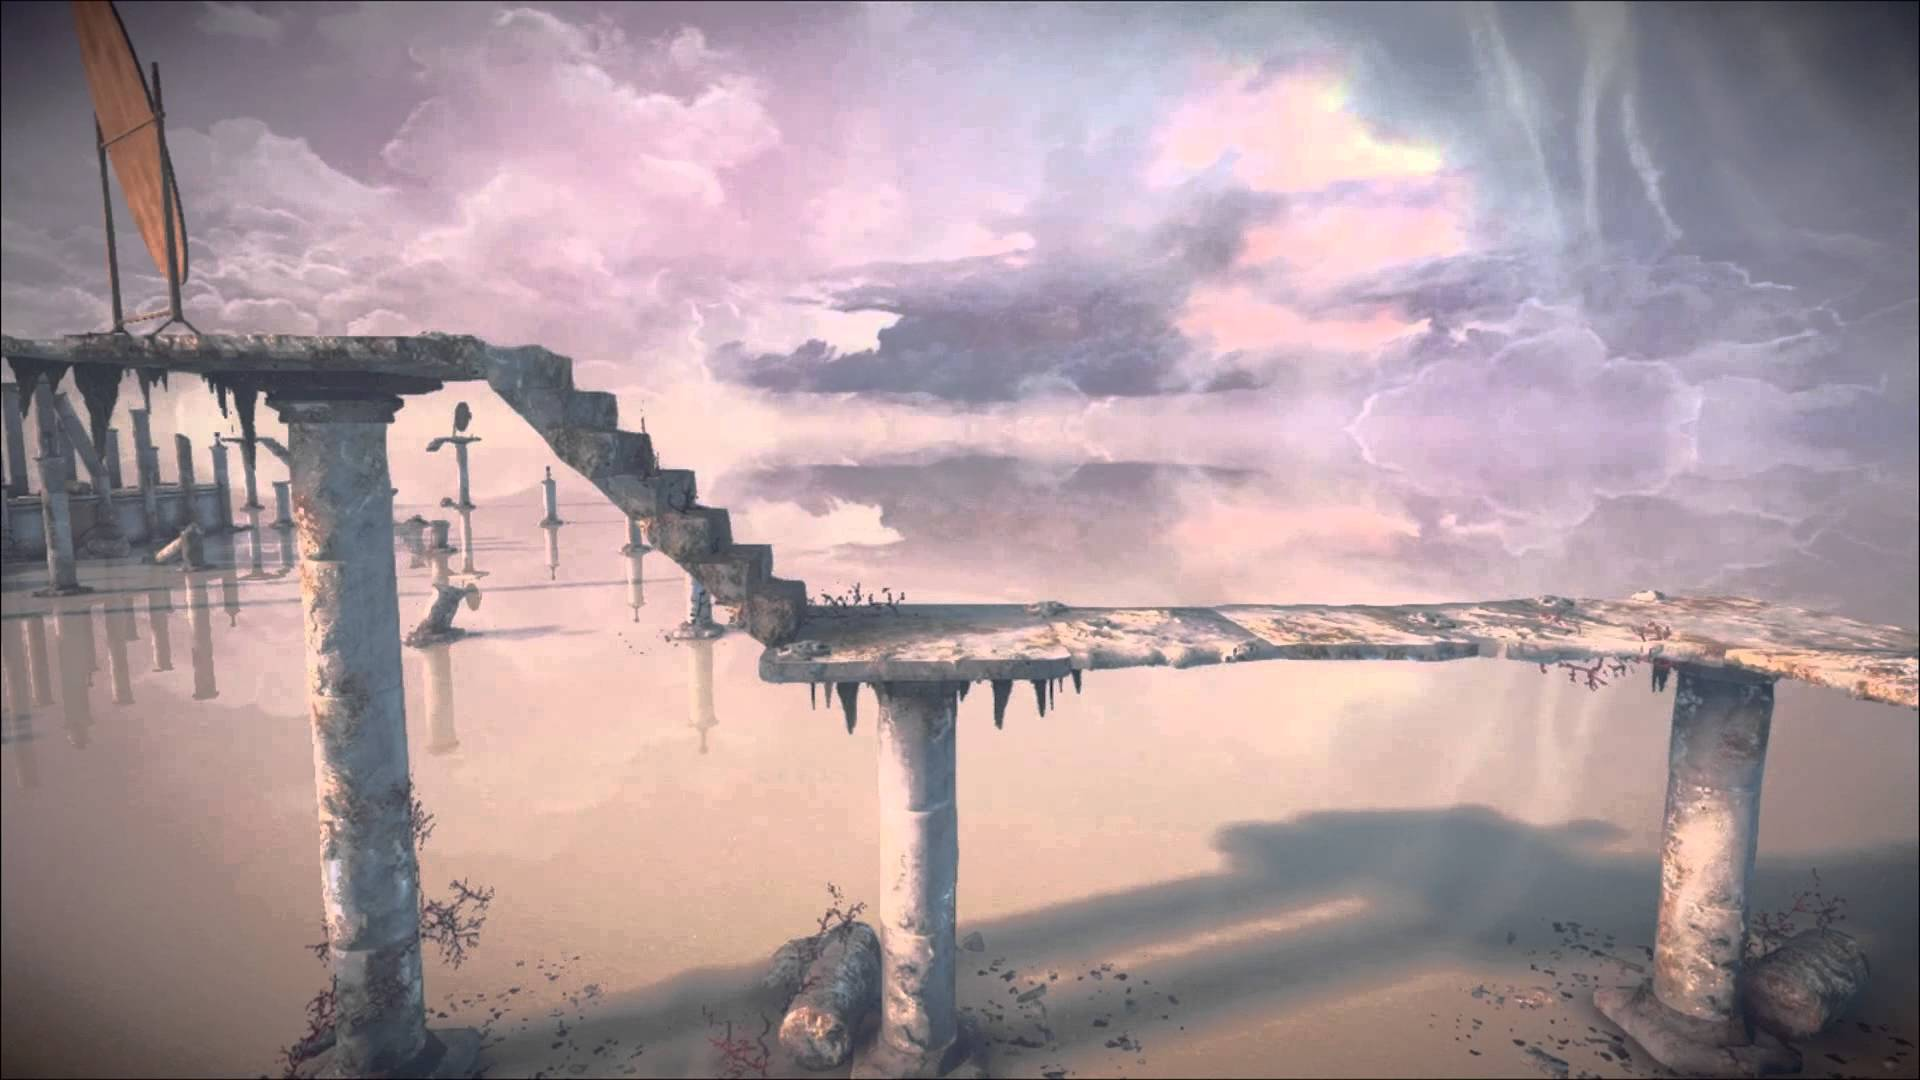 Mind-Path-to-Thalamus-PC-Game-scene